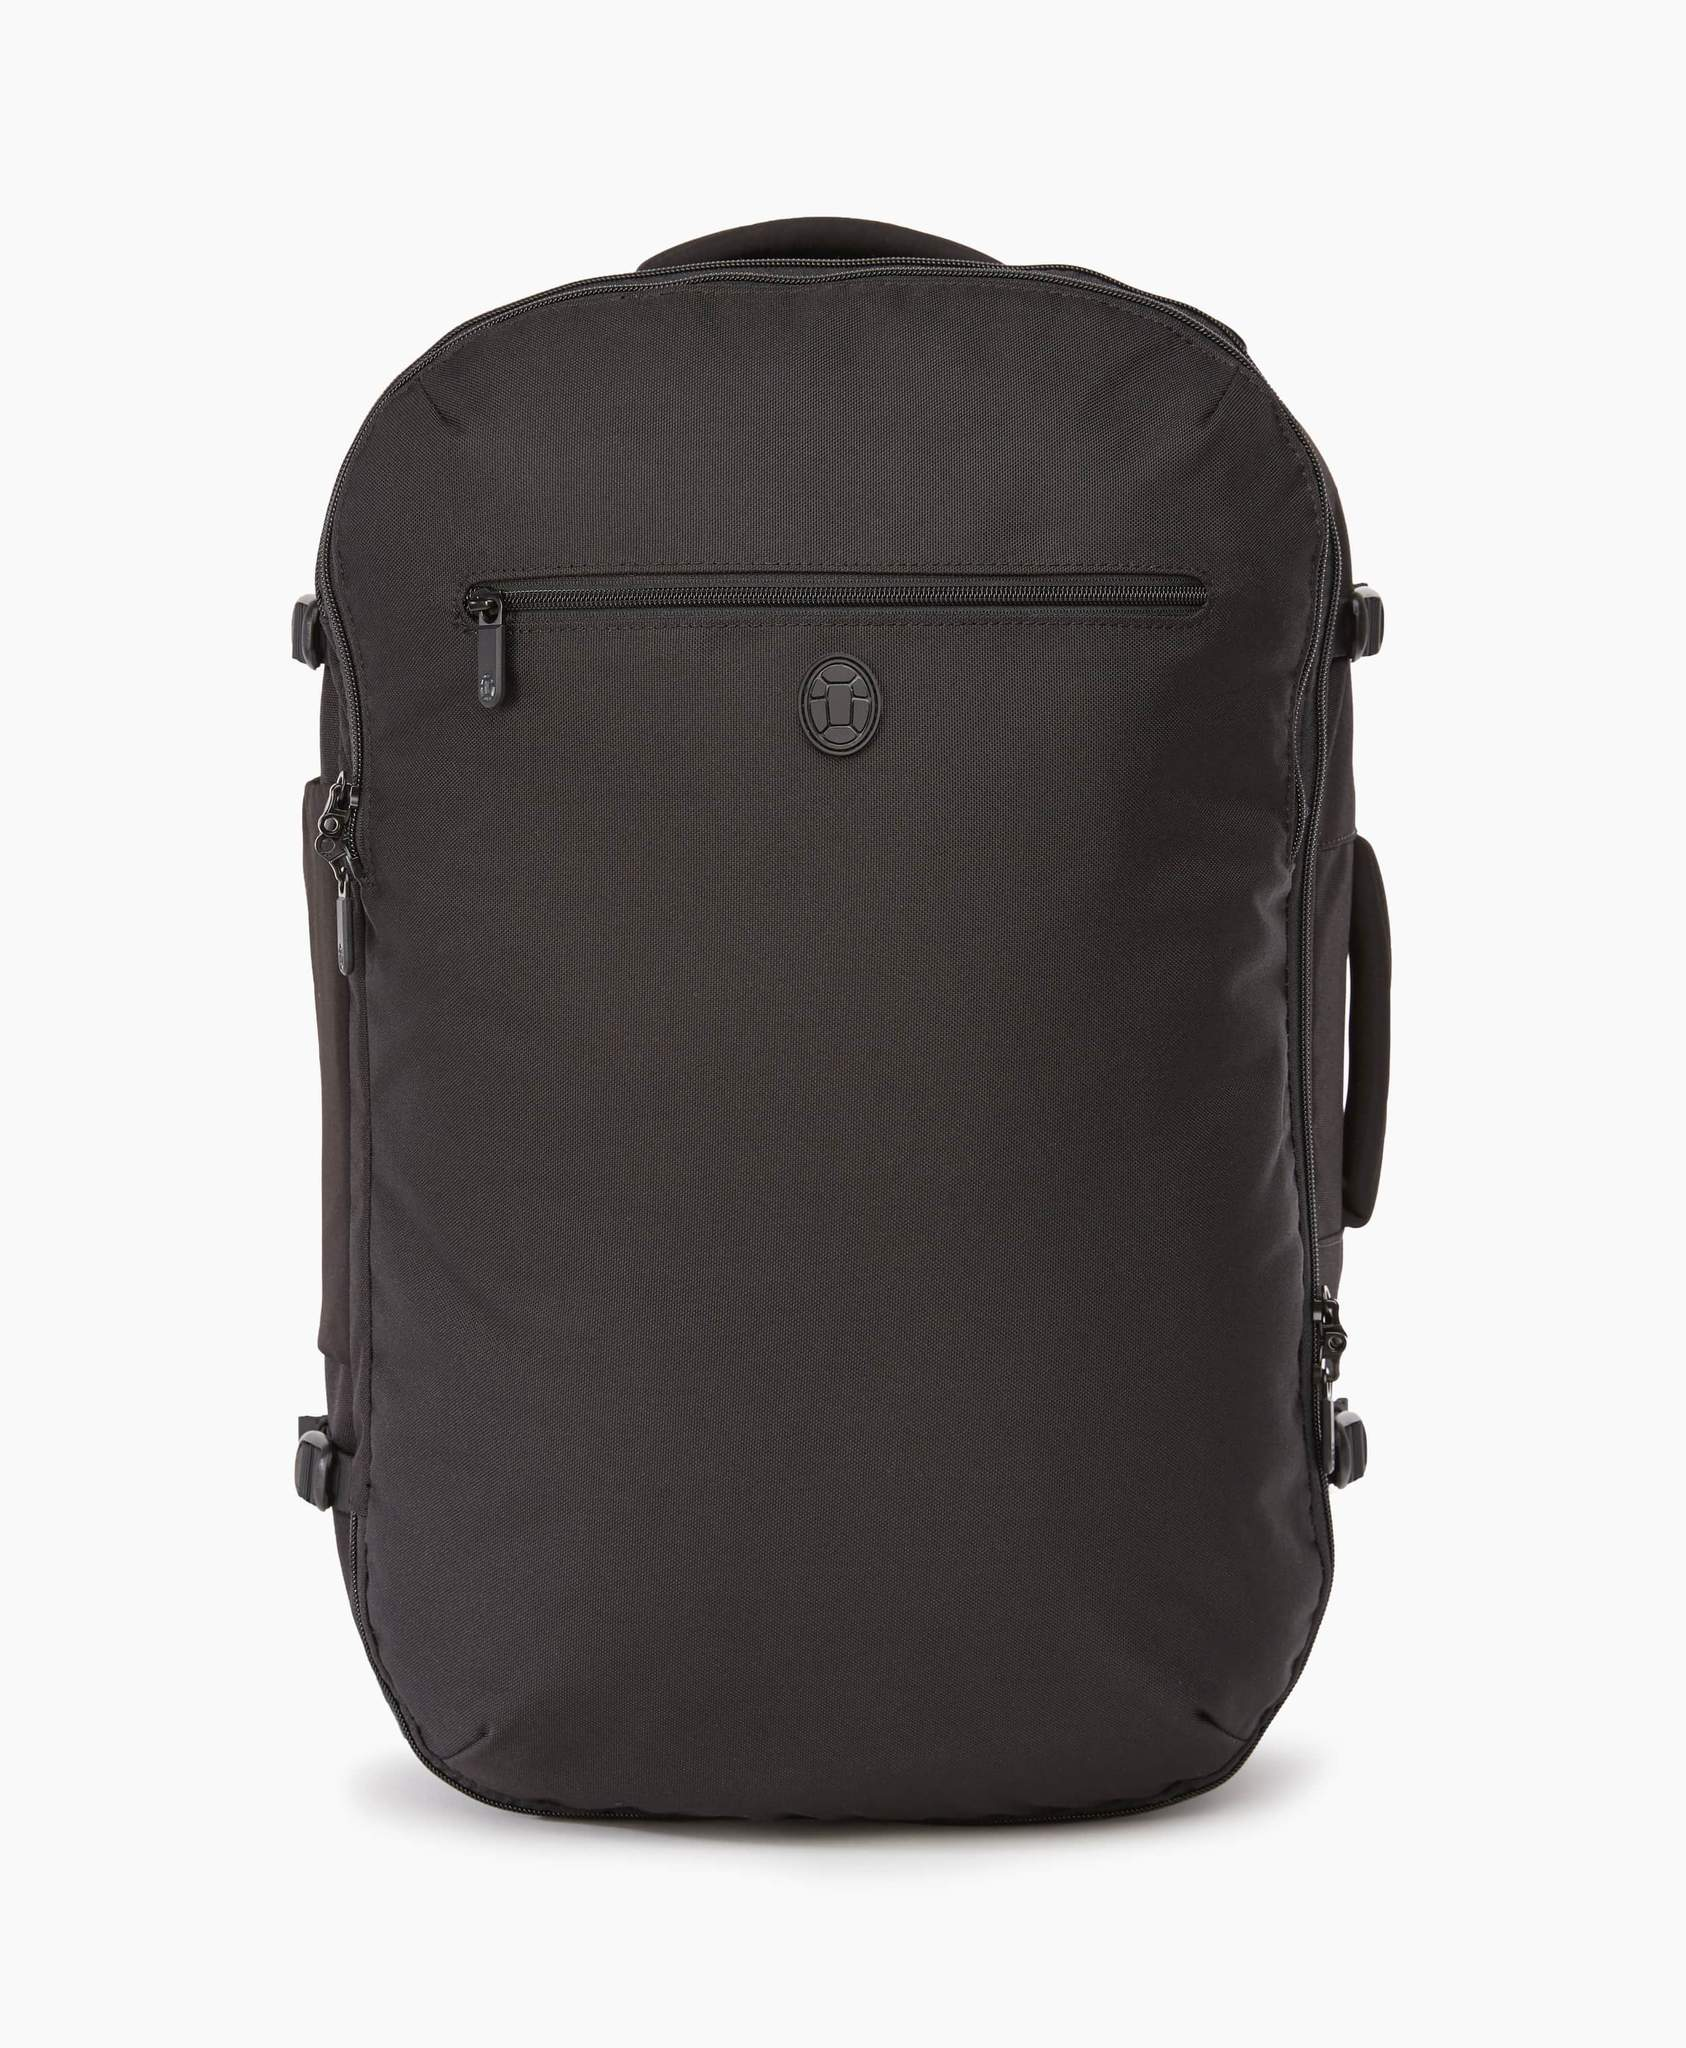 product/ 35L: Max-sized international carry on